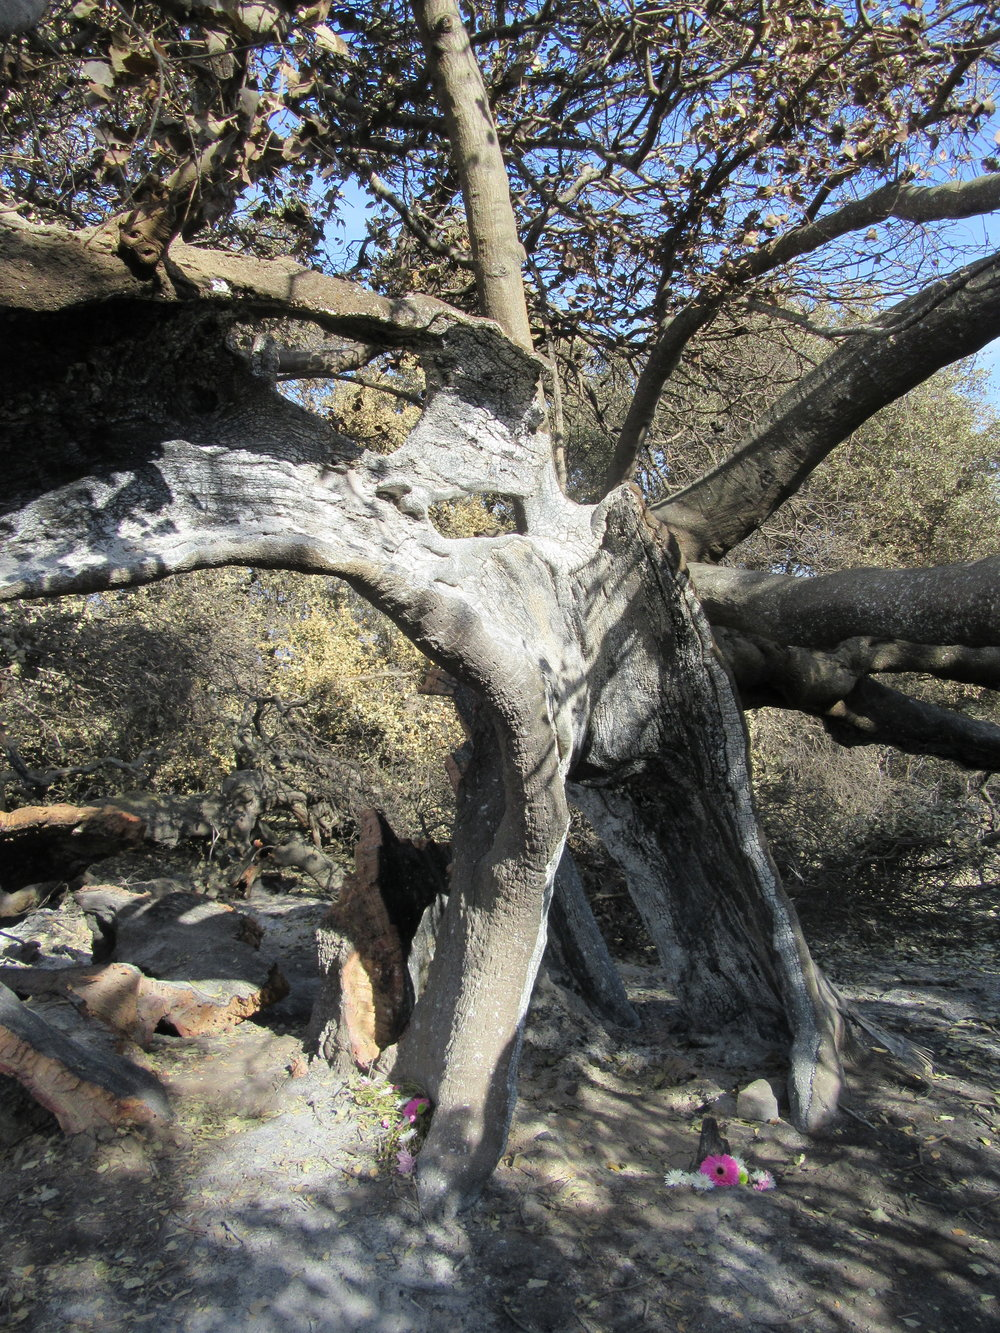 THE 2017 THOMAS FIRE severely burned the already damaged core of Baba's Tree at Meher Mount. The interior tree trunk had burned earlier in the 1985 New Life Fire, and the hollow portion of the tree remained. (Photo: Sam Ervin, January 5, 2018)